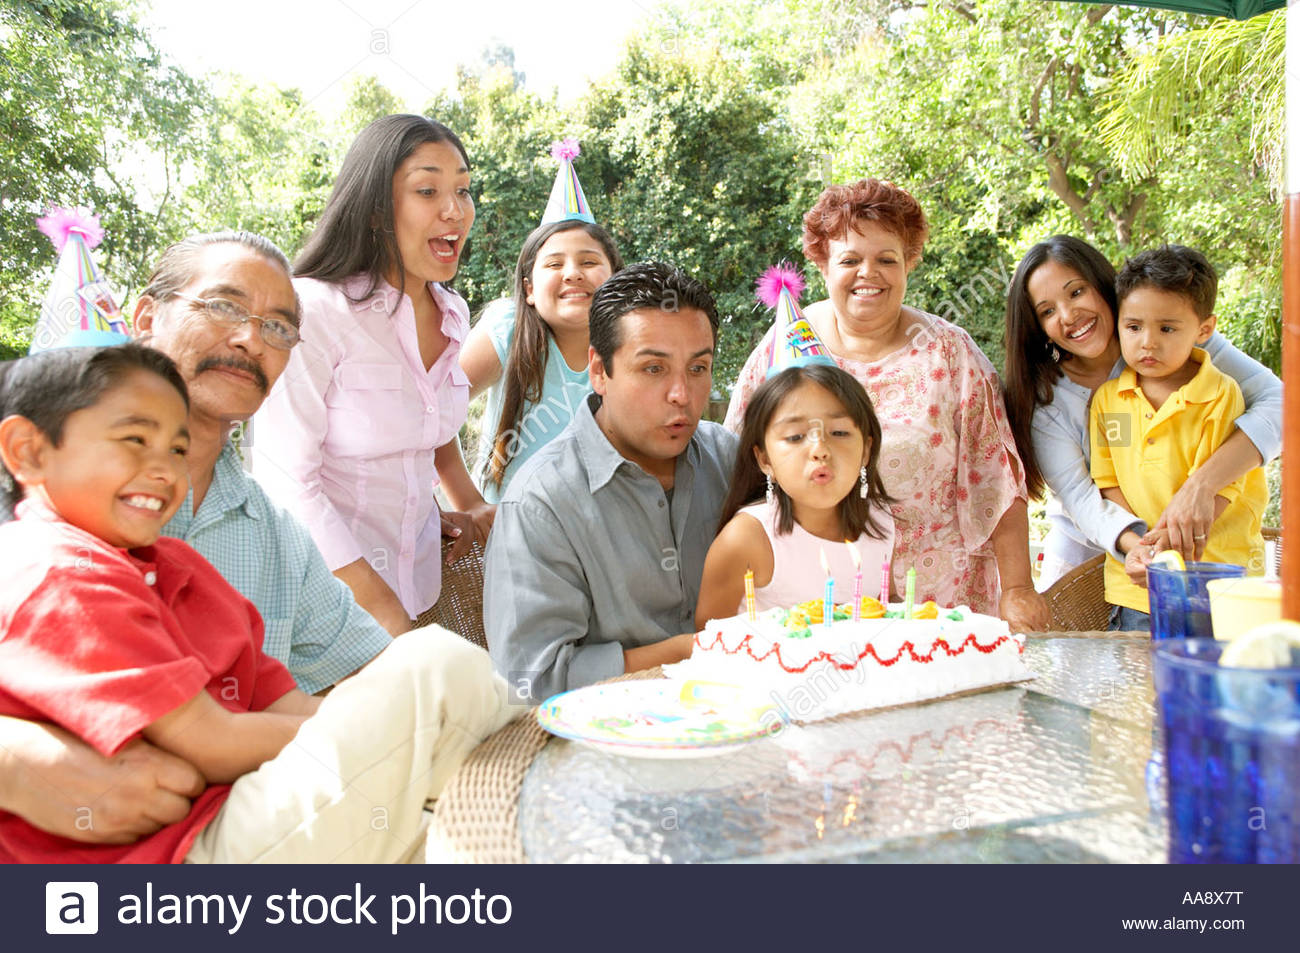 Extended Hispanic family at birthday party - Stock Image